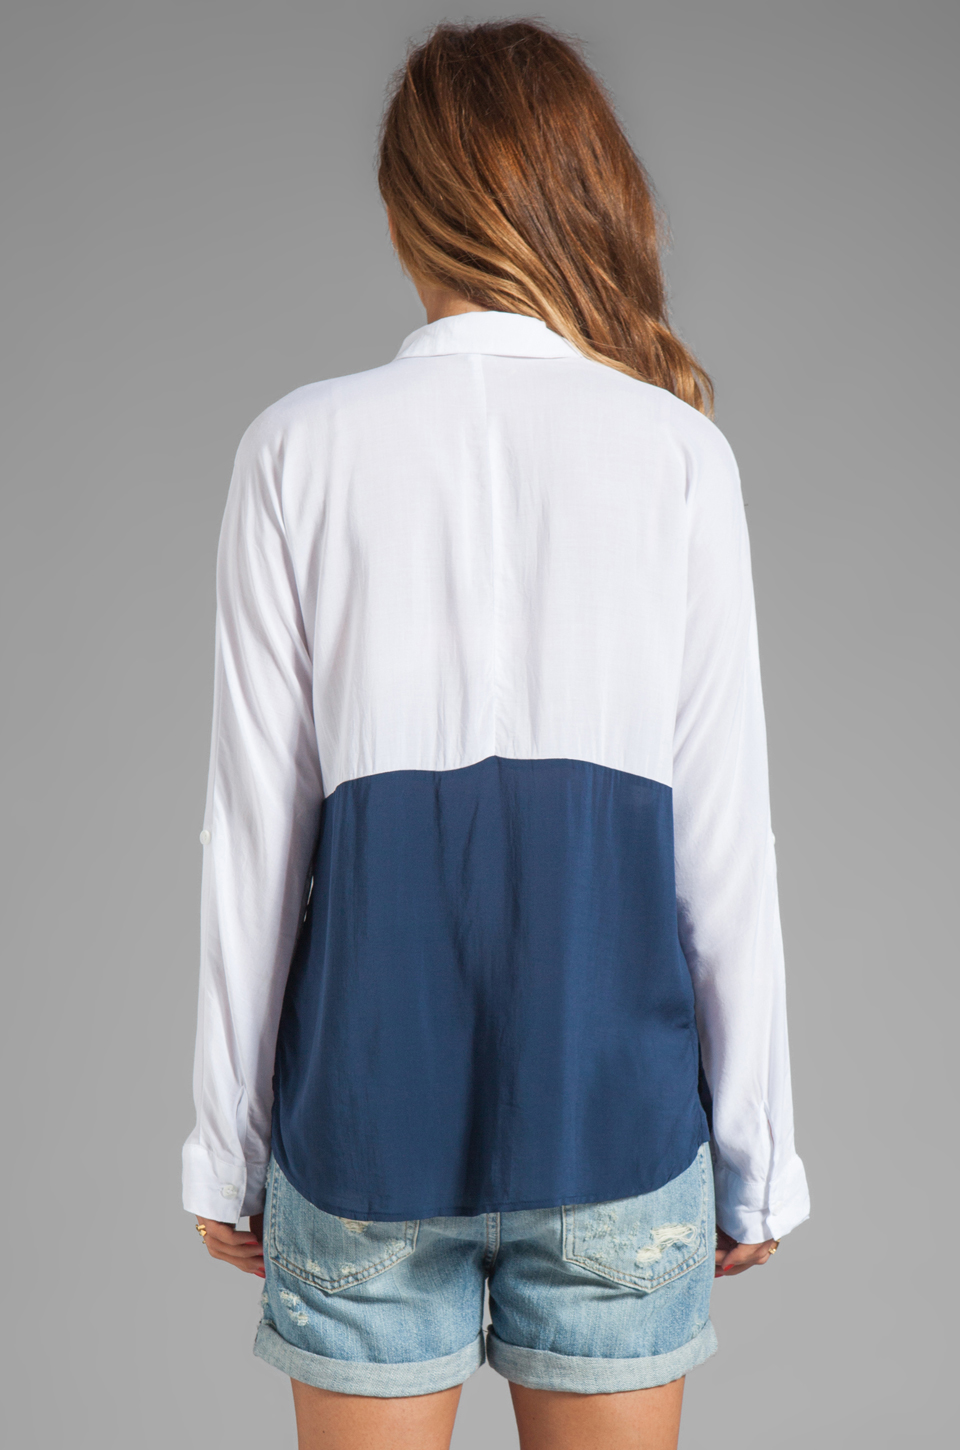 Splendid Color Blocked Button Up Top in Navy/White